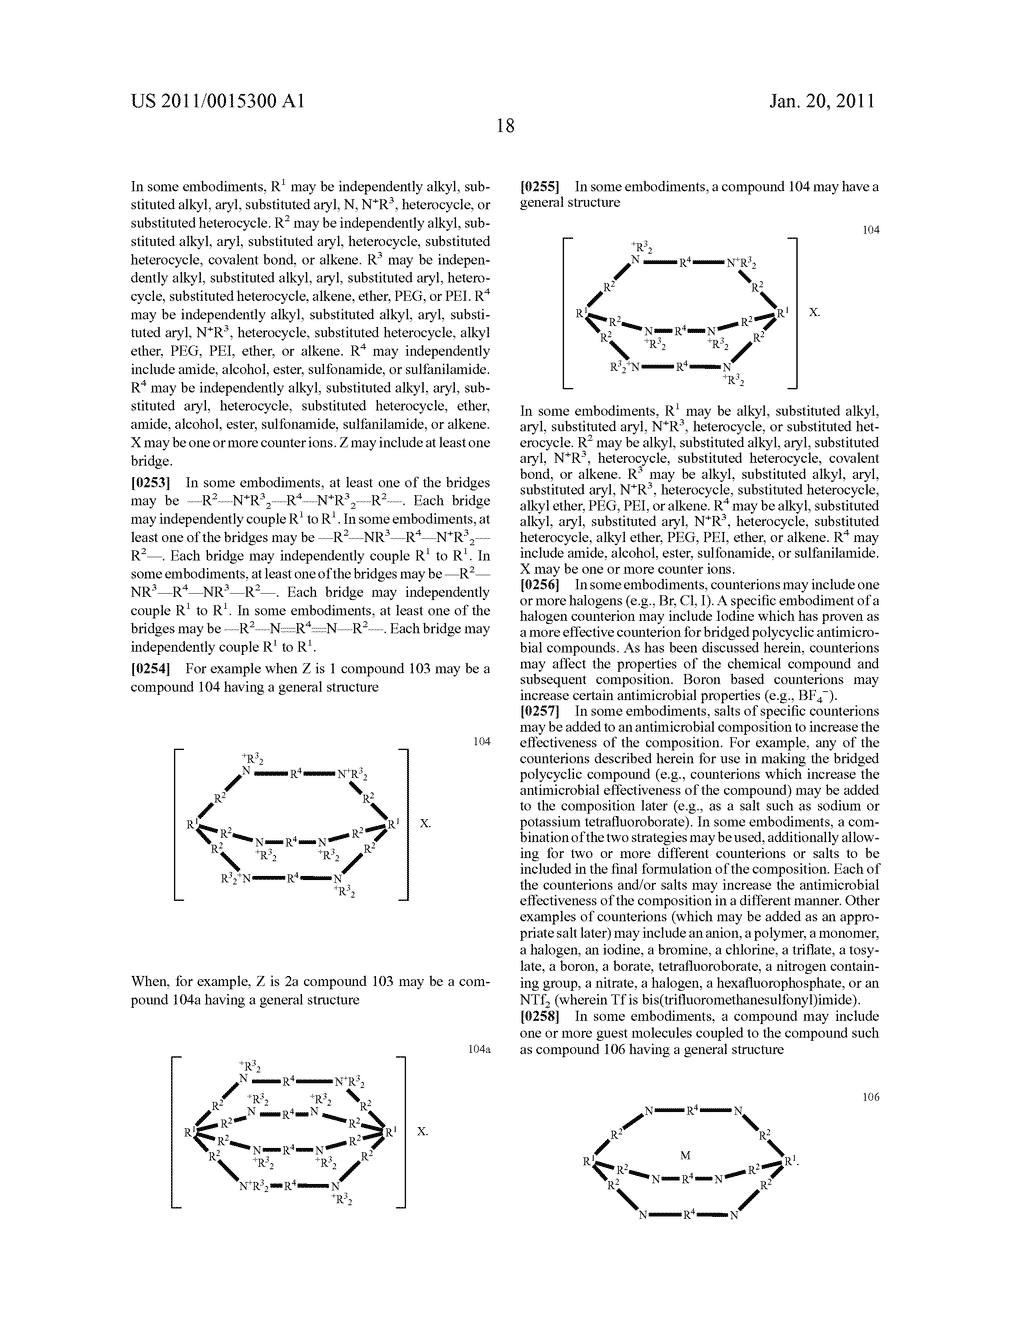 METHODS AND SYSTEMS FOR COATING A SURFACE - diagram, schematic, and image 21